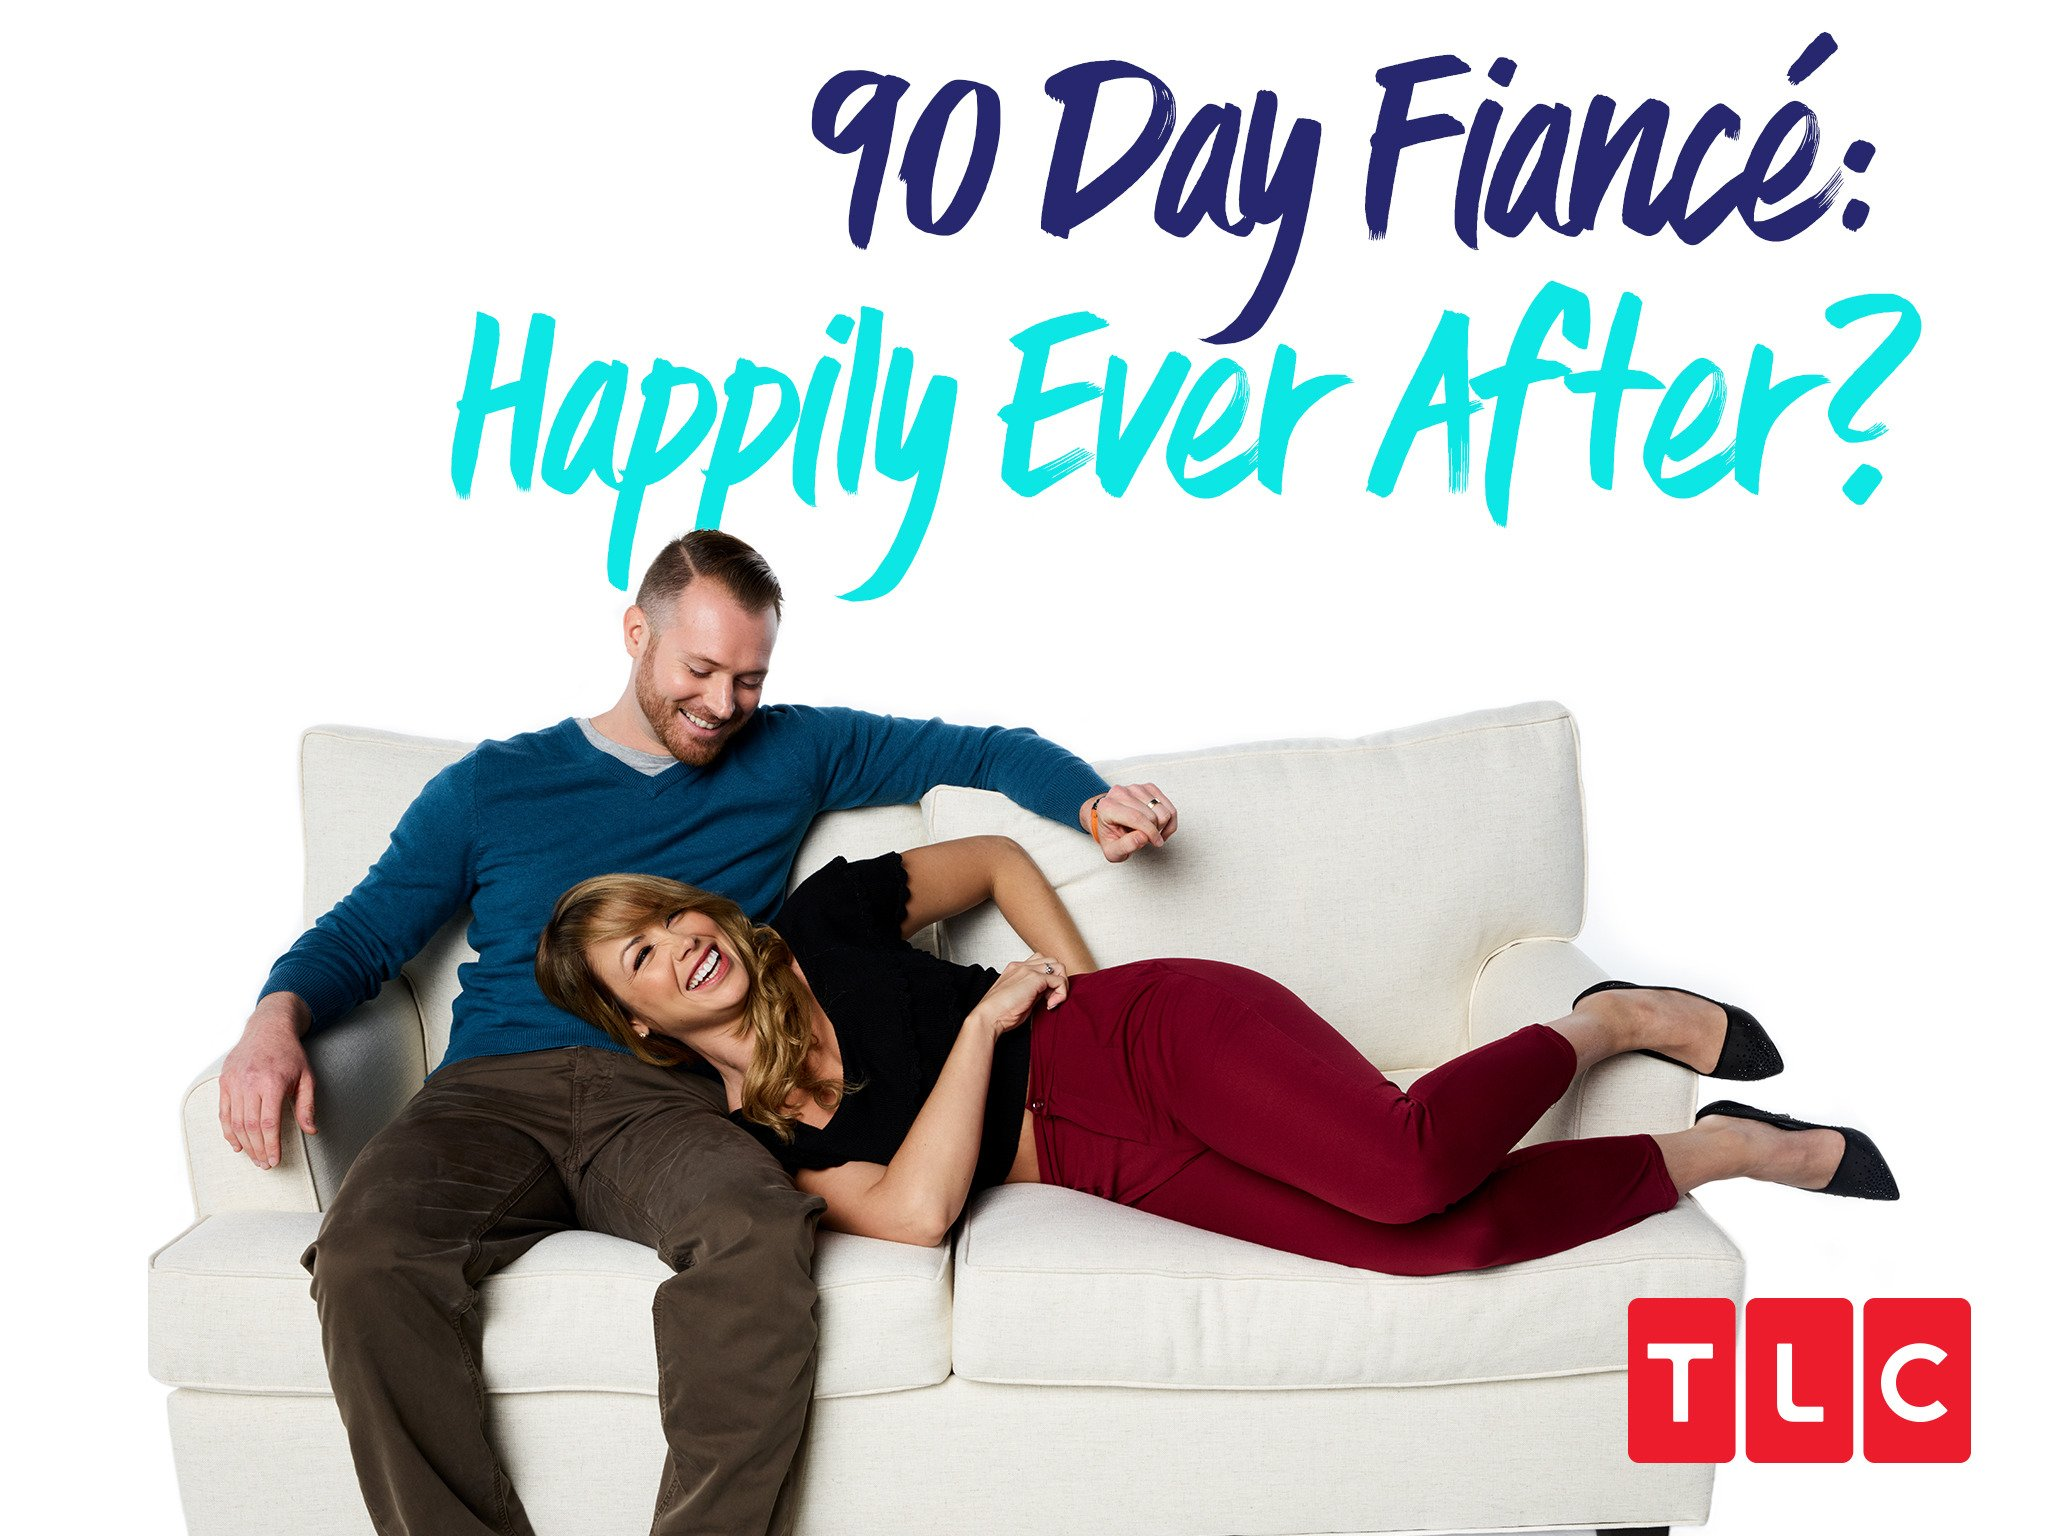 90 day fiance season 5 episode 11 watch online free